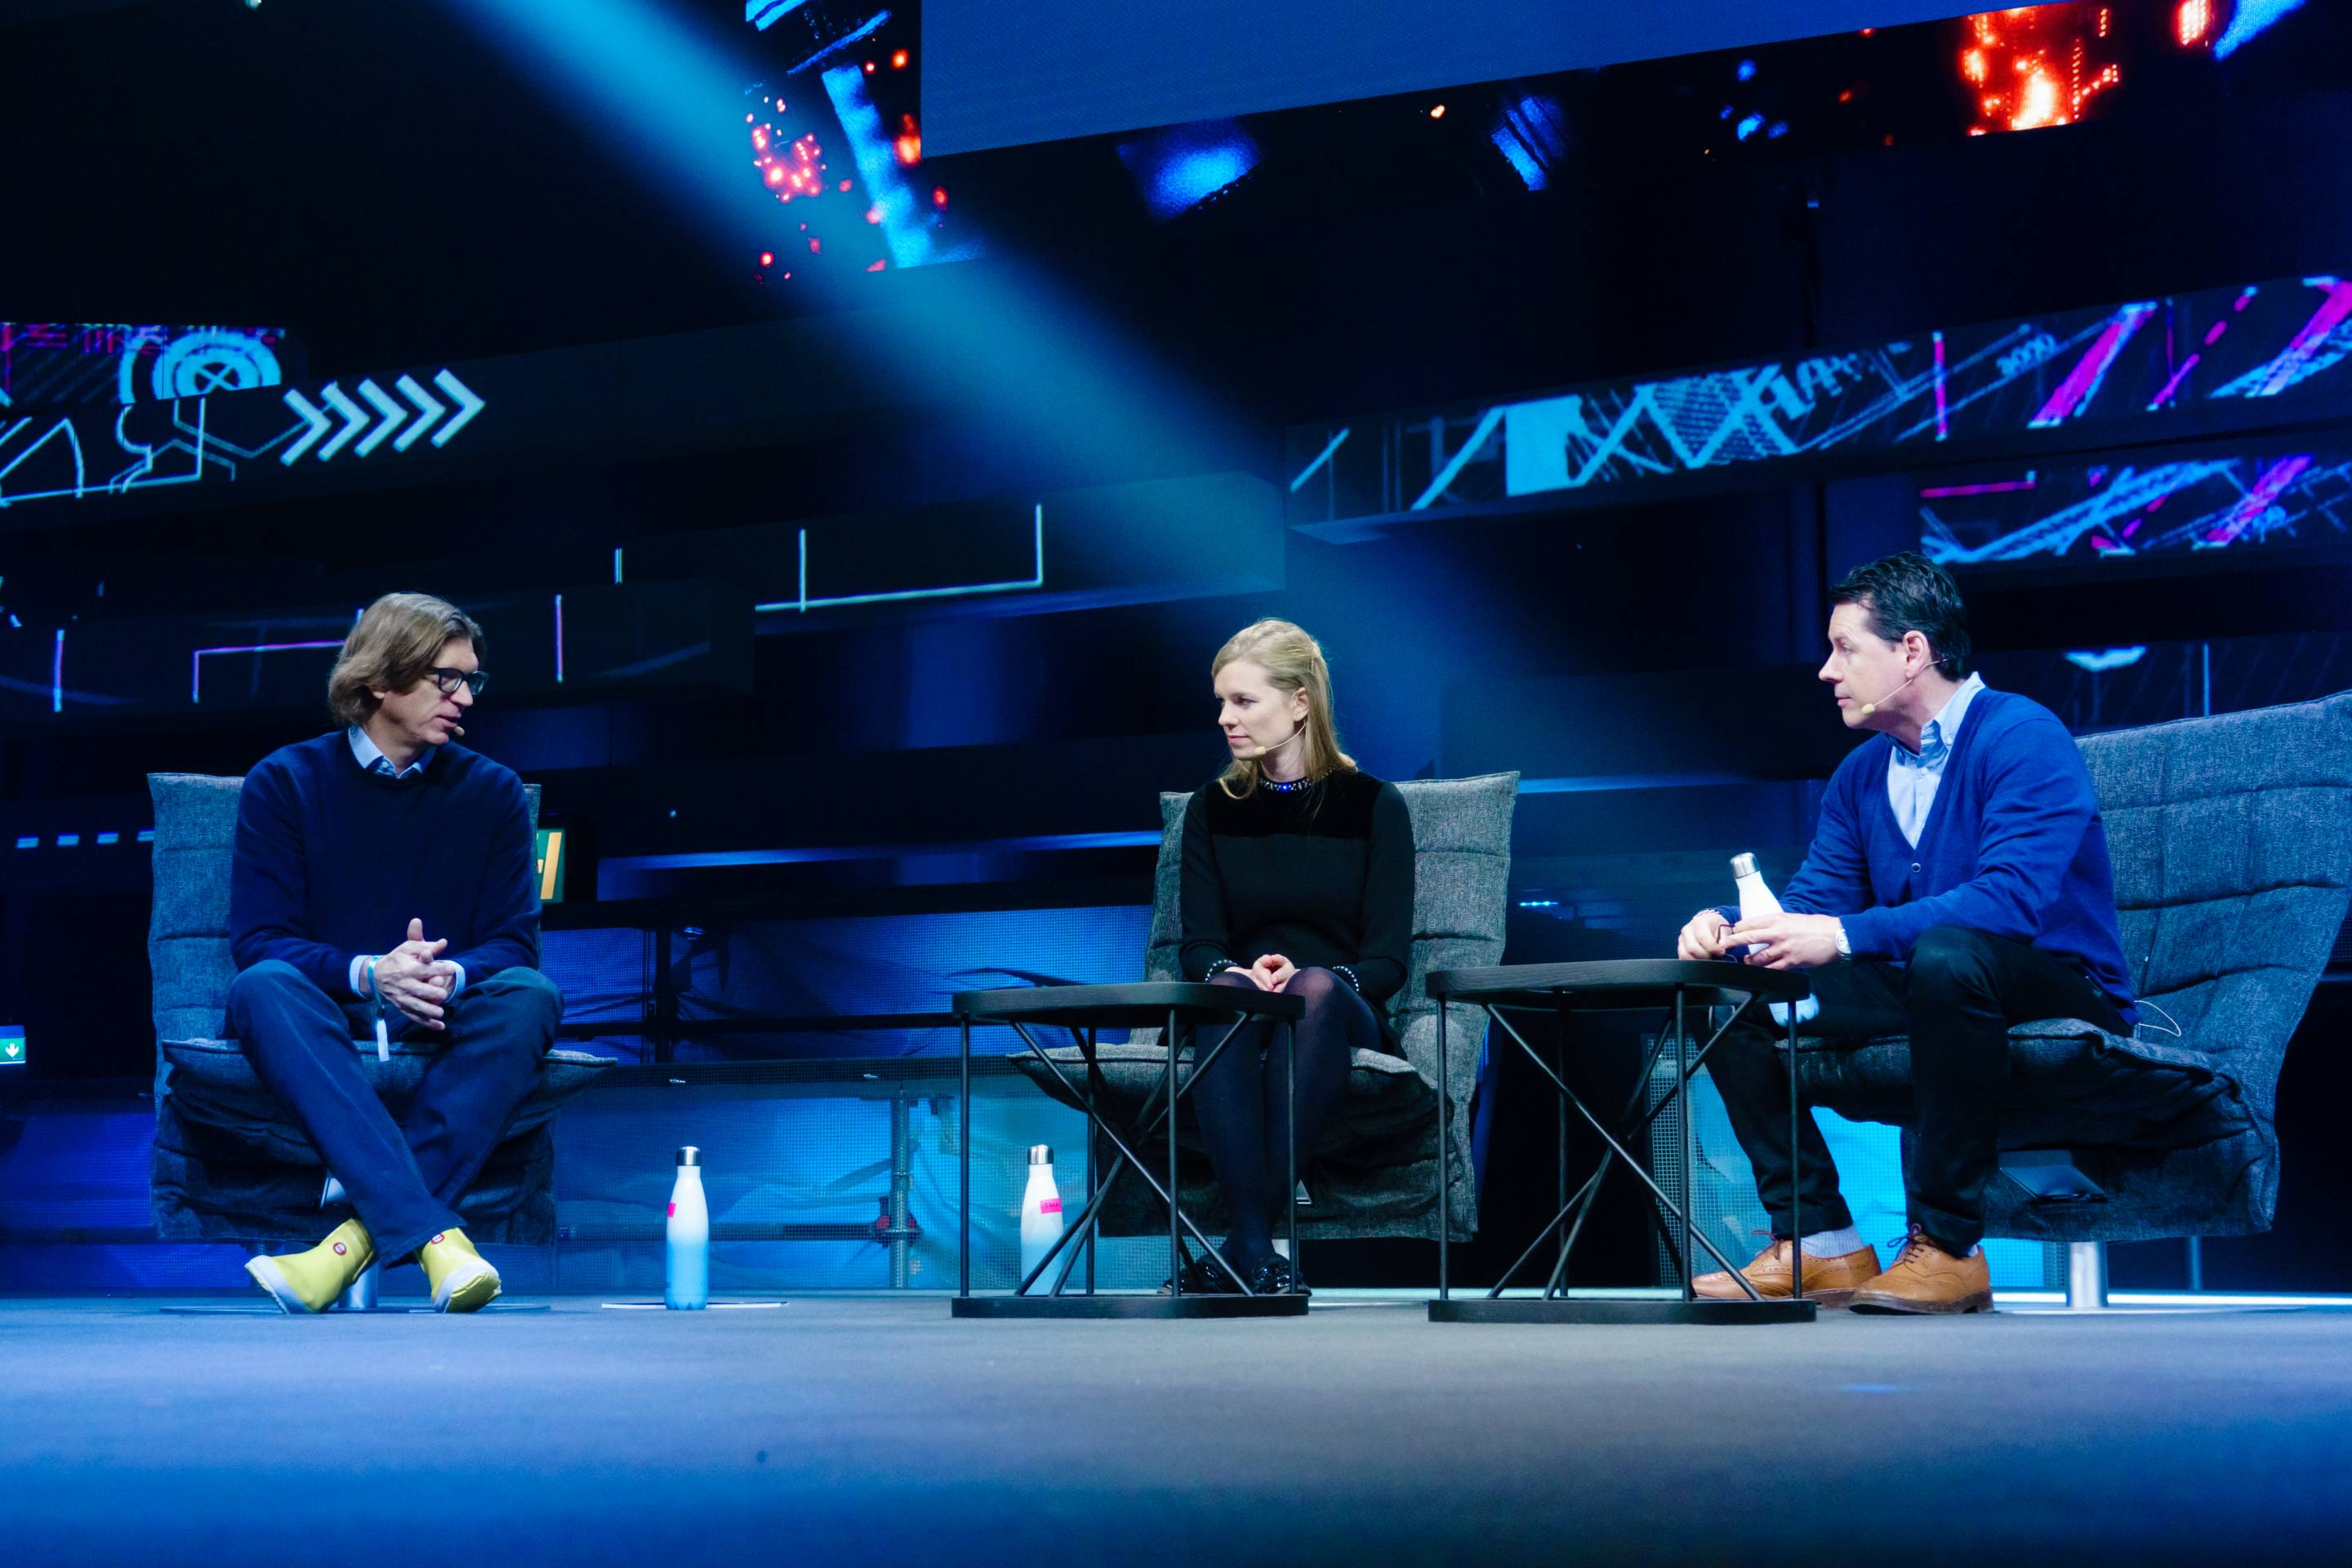 Atomico's Niklas Zennström (left) and Diversity VC's Check Warner (center) discuss the issue of diversity in the European tech industry on stage at the Slush conference in Helsinki, along with Greg Williams (right), editor-in-chief of Wired UK.